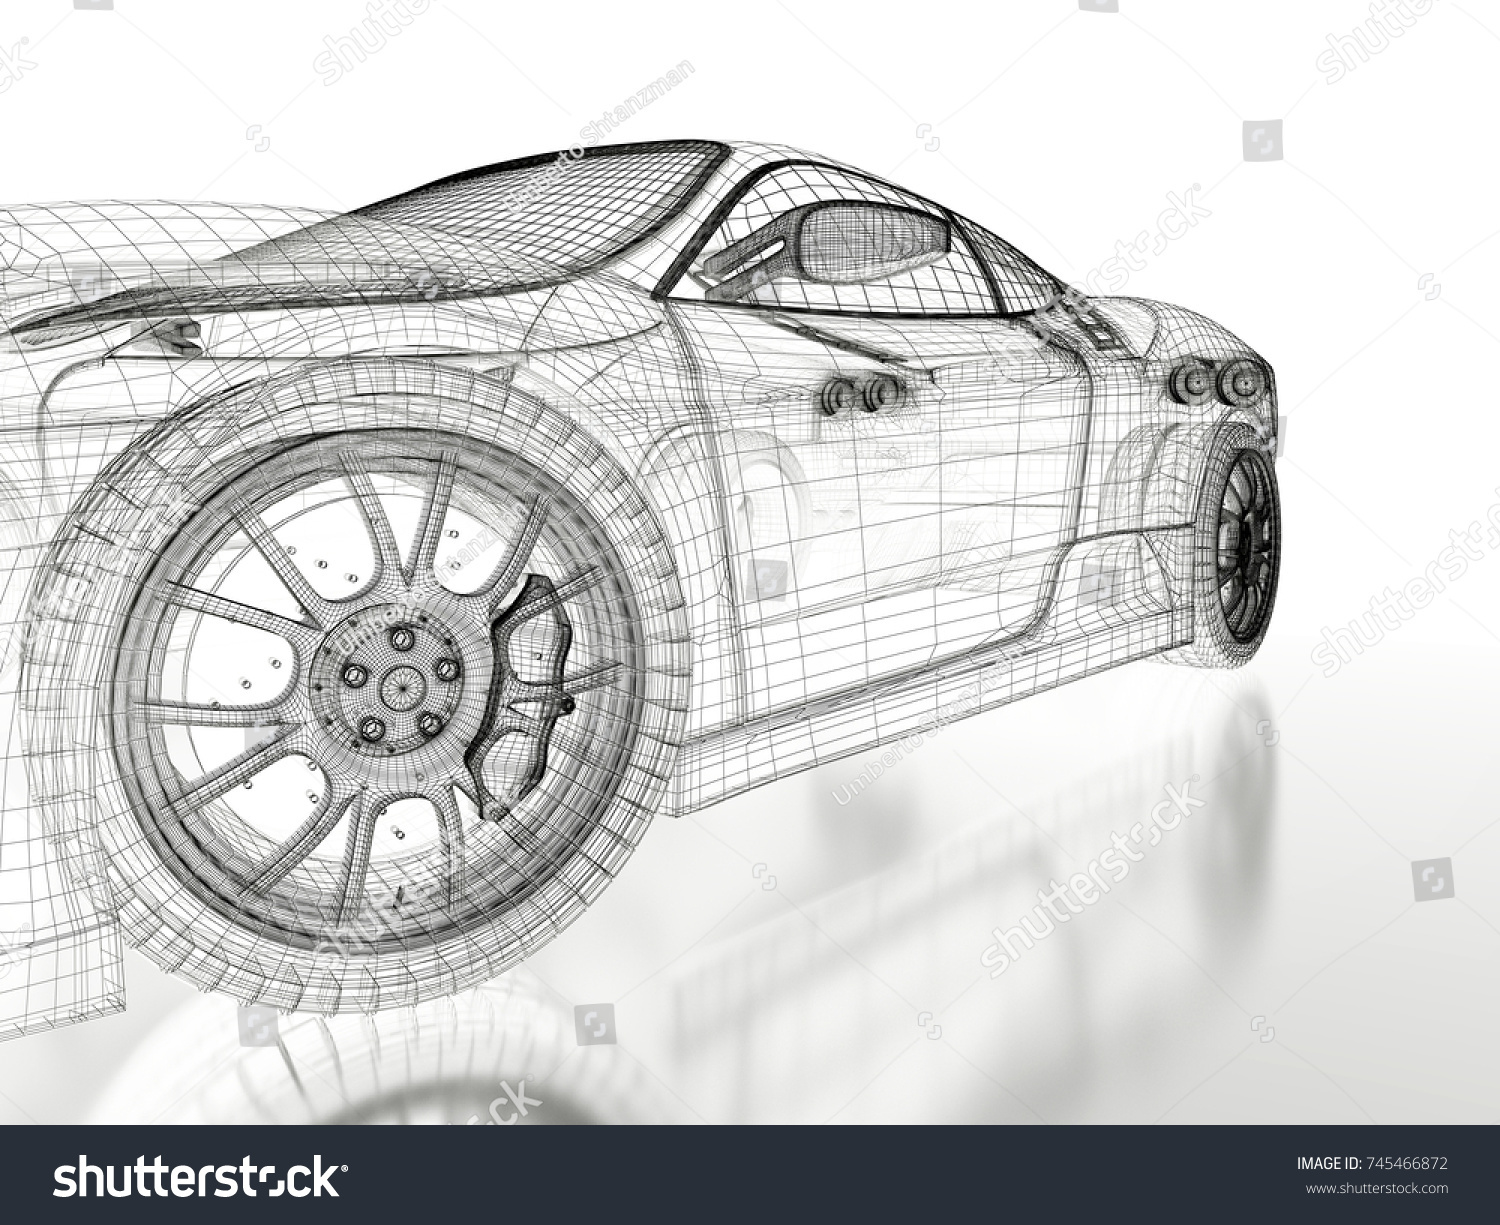 Car vehicle 3 d blueprint mesh model stock illustration 745466872 car vehicle 3d blueprint mesh model on a white background 3d rendered image malvernweather Image collections